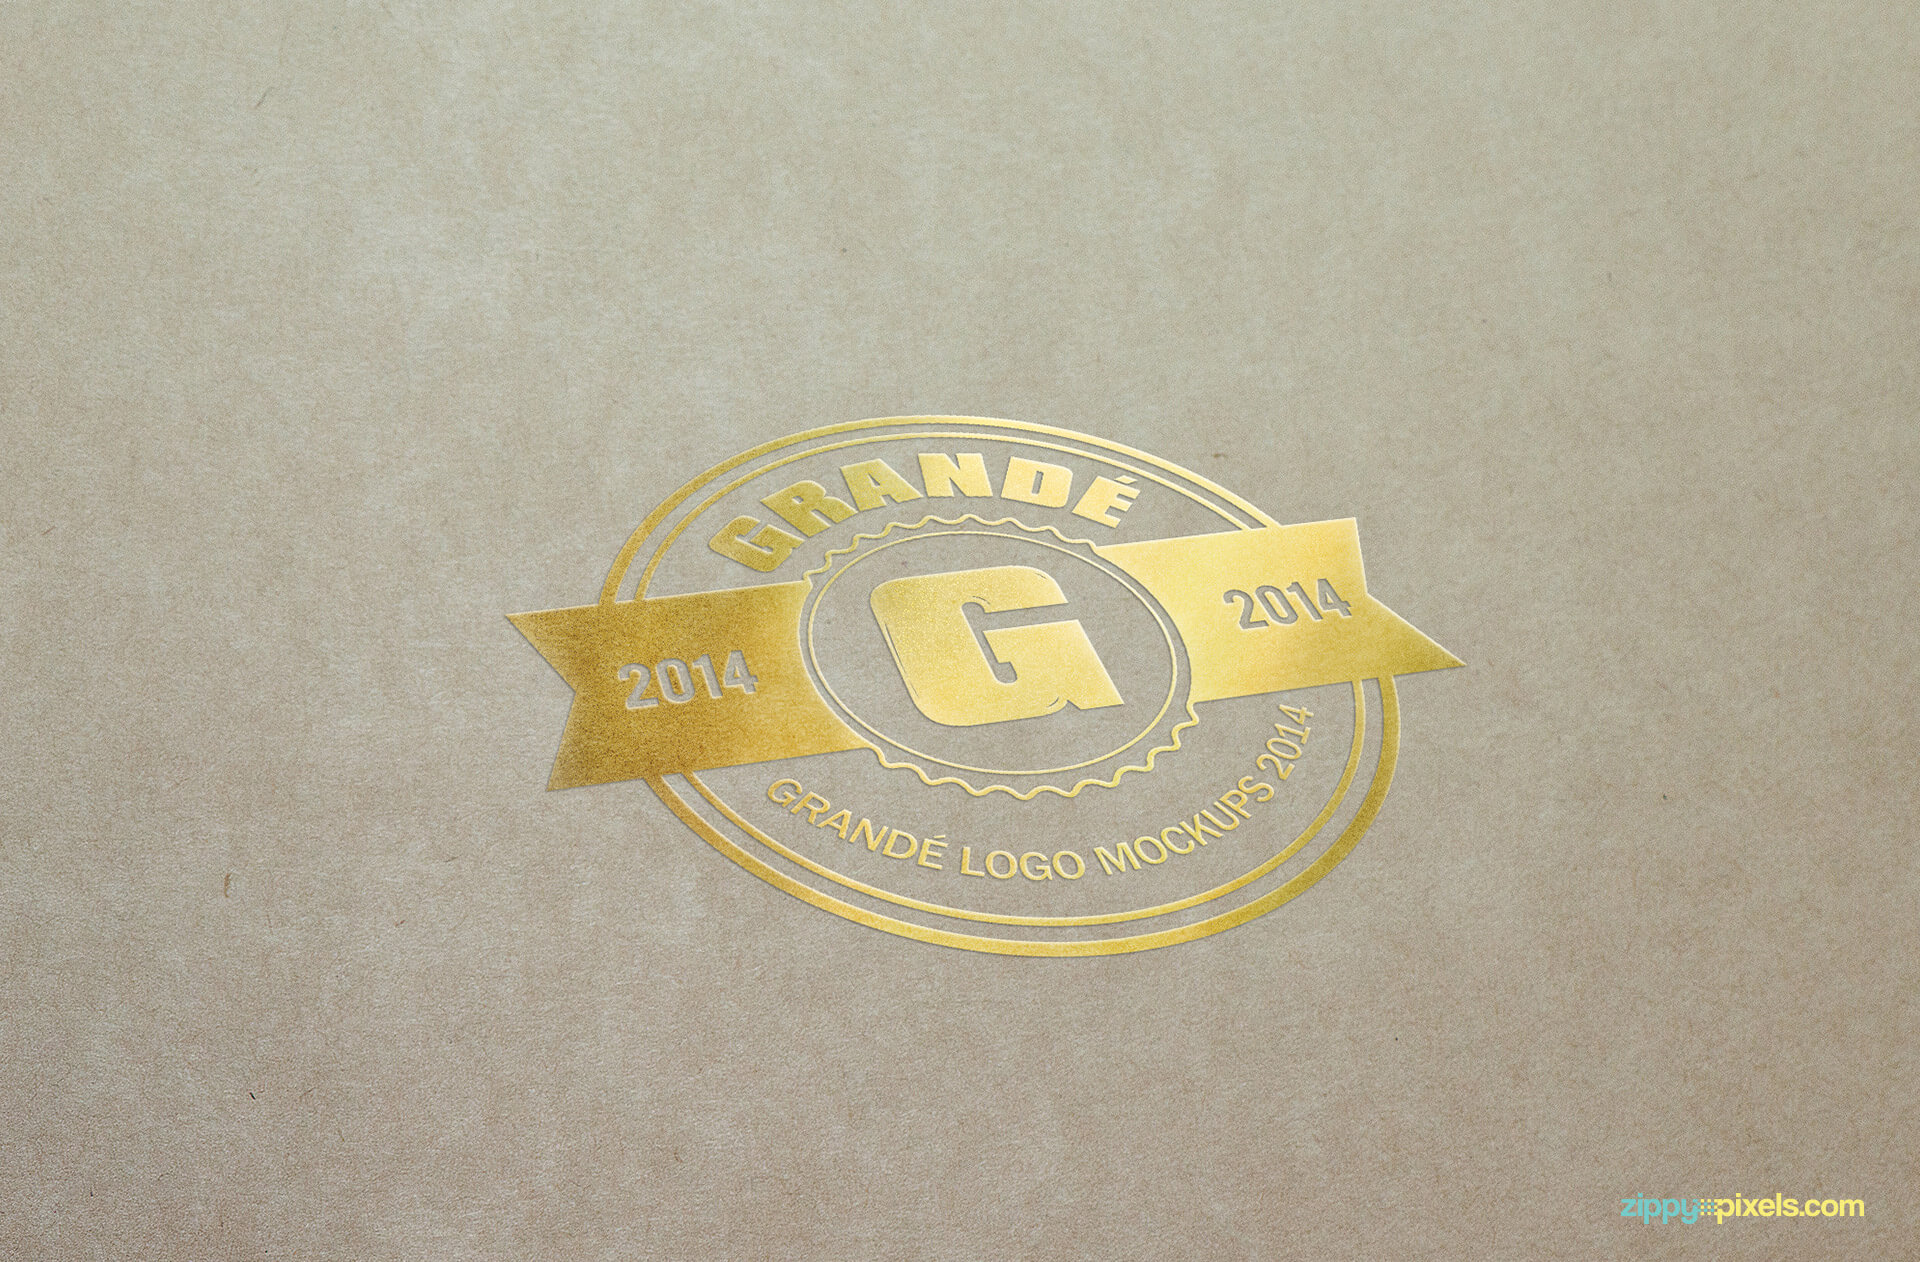 Mockup of Gold Foil Logo Print on Paper